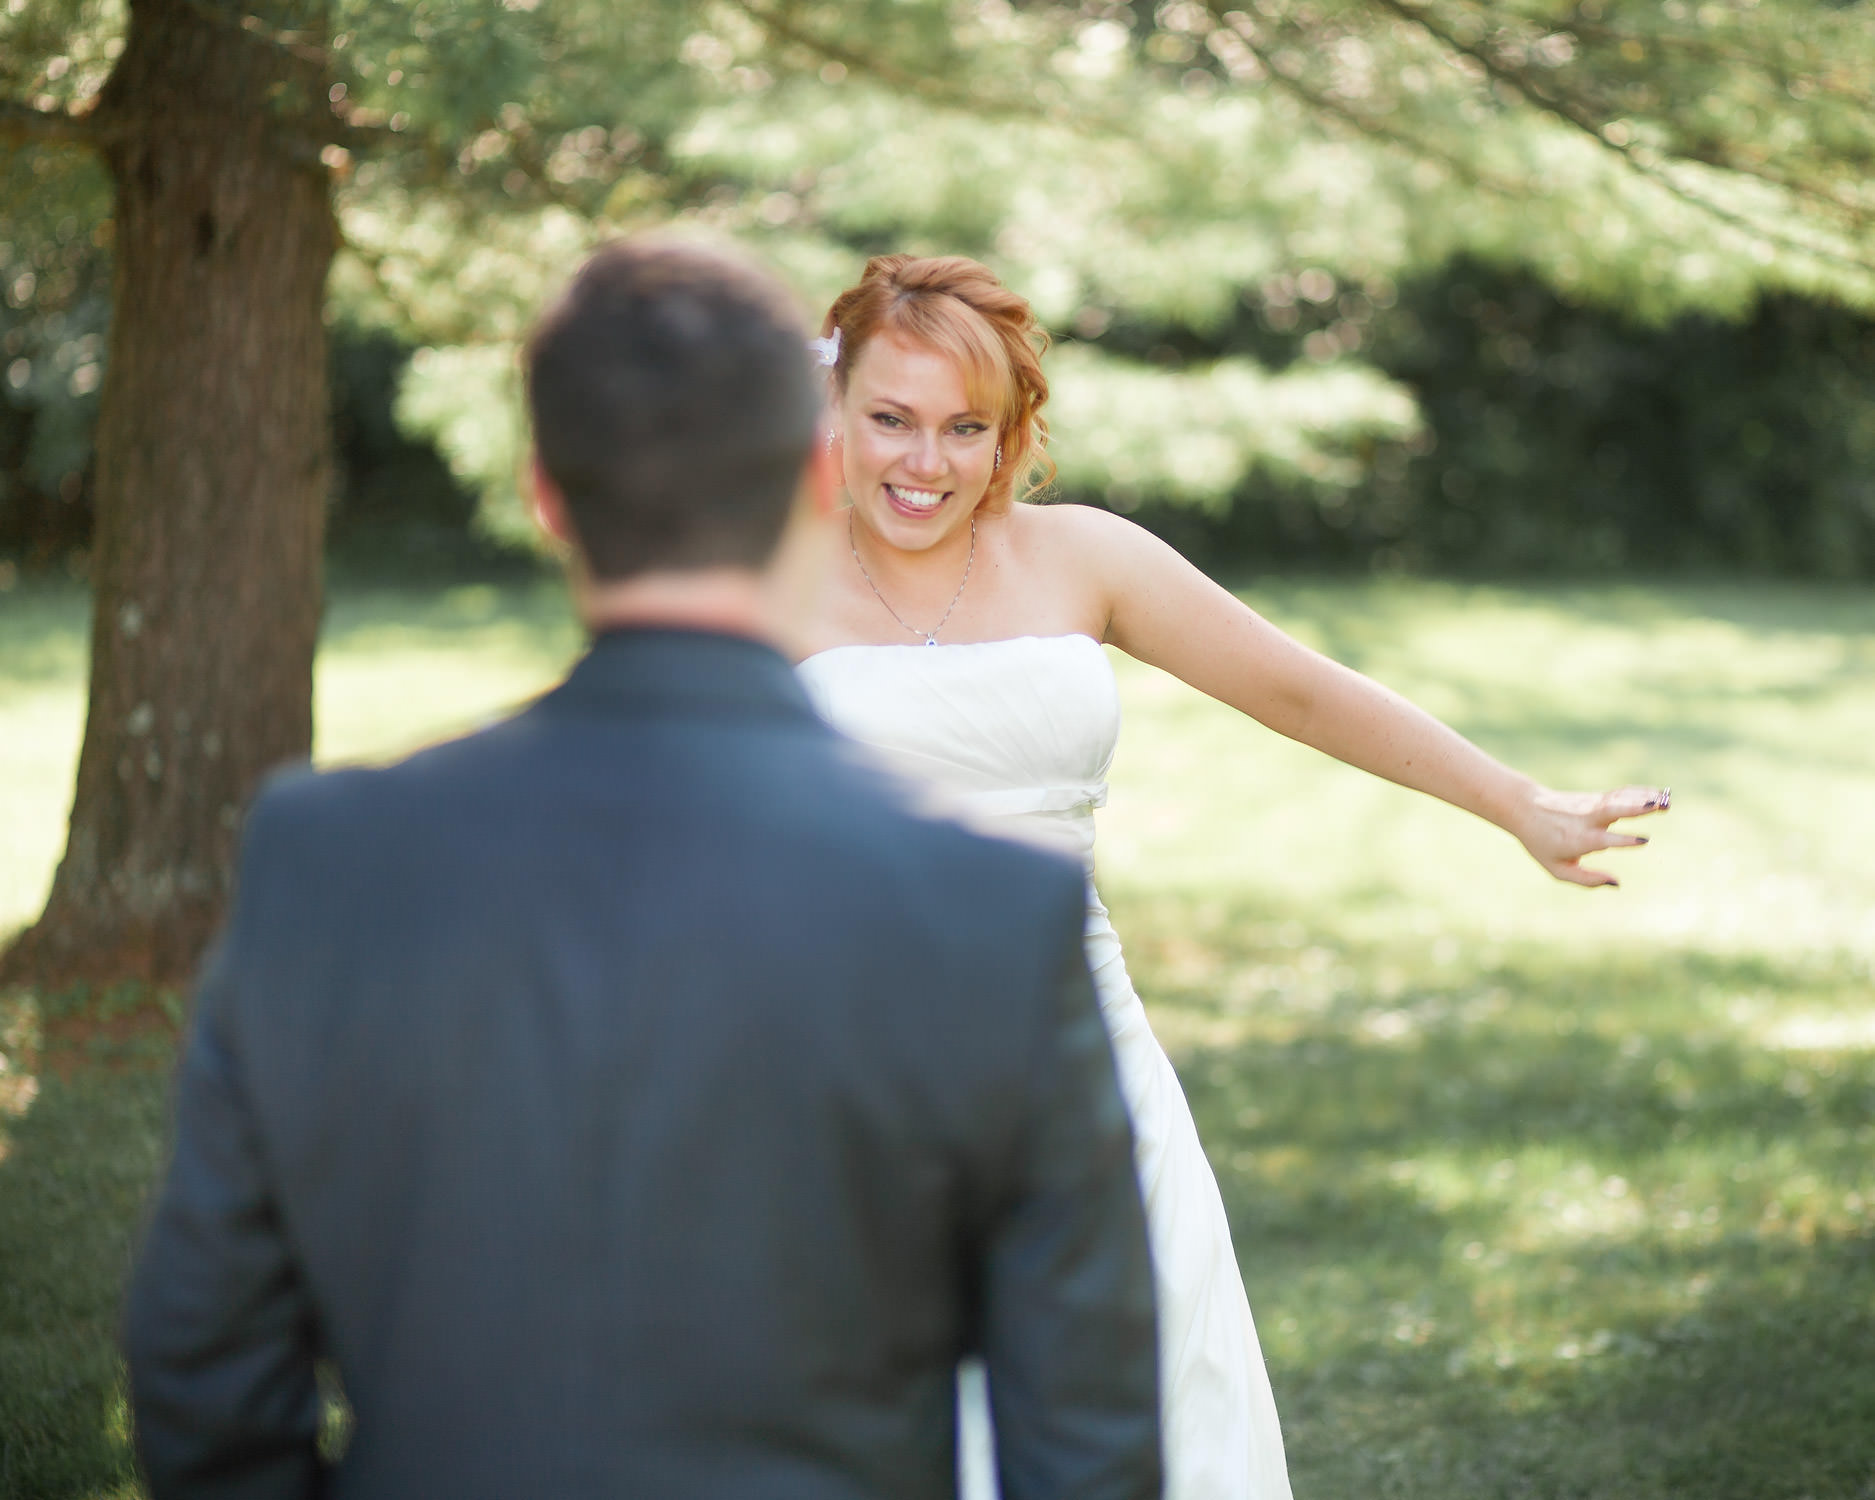 A bride shows off her wedding dress during a pre-ceremony first look by Vermont wedding photographer Stina Booth